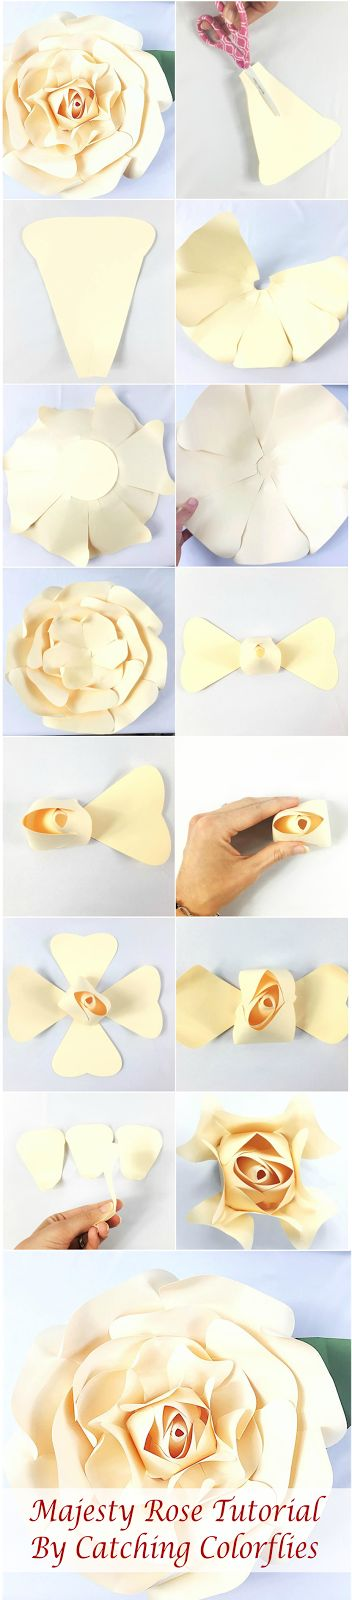 How to Make a Giant Paper Rose. Paper Flower Templates and Patterns. Paper Flower Tutorial. Giant Flower SVG Cutting FIles. Easy paper flower tutorial. http://catchingcolorflies.com/ #DIY